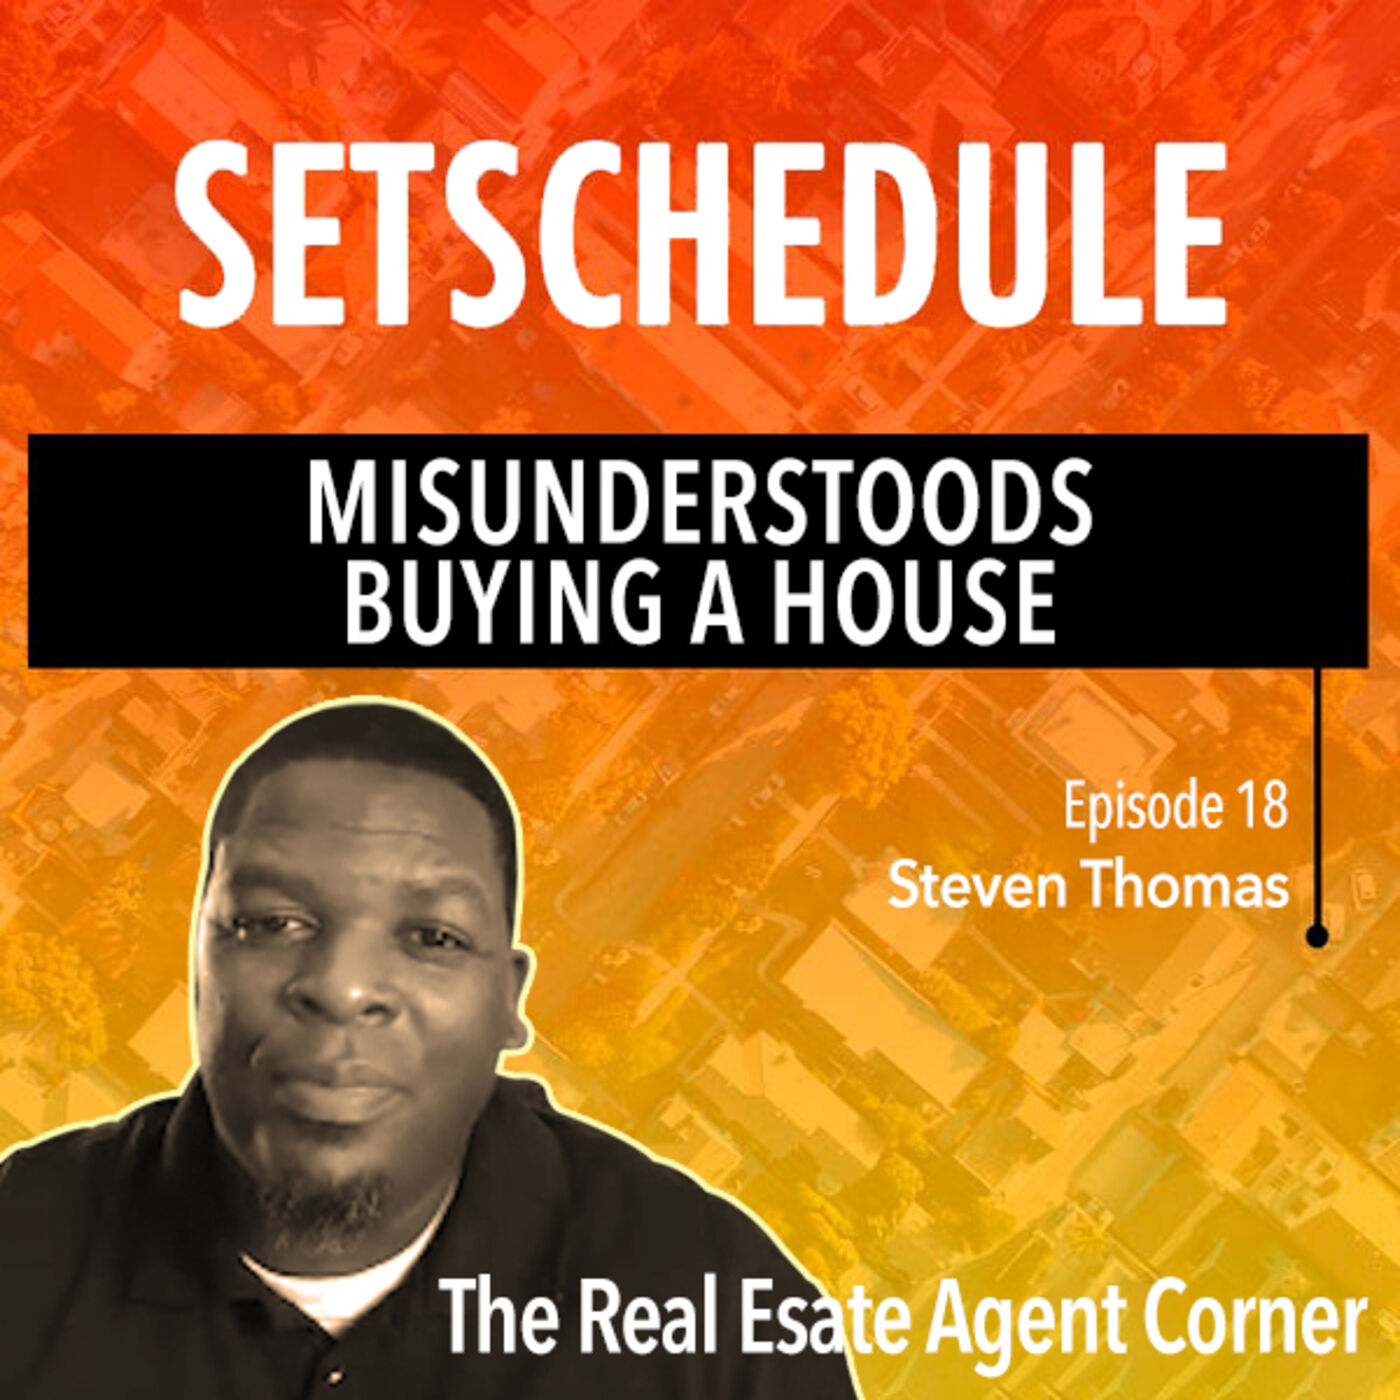 Misunderstandings when buying real estate with Steven Thomas